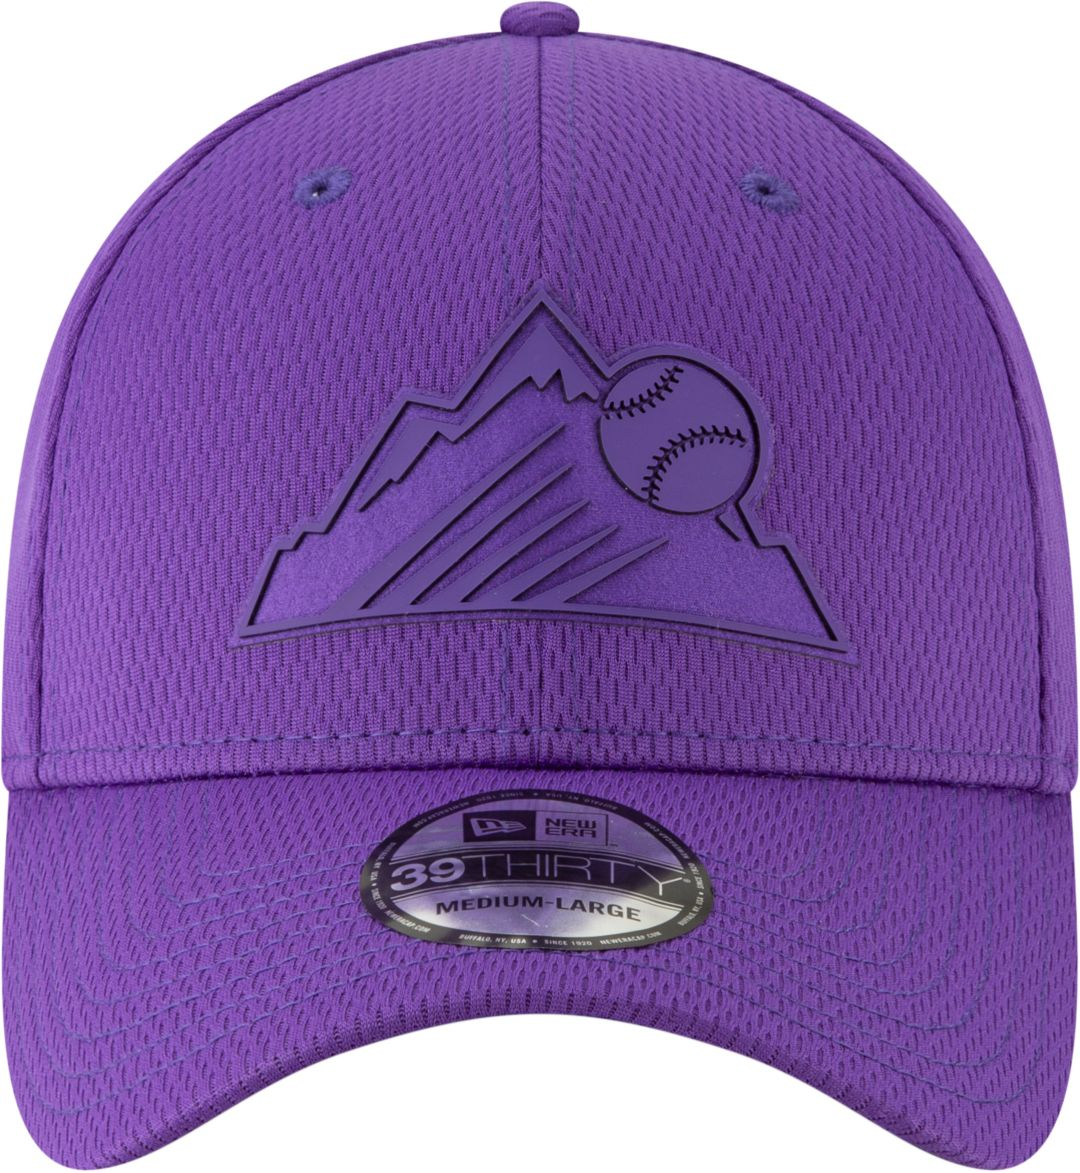 reputable site 4ab1d 0f8eb New Era Men s Colorado Rockies 39Thirty Clubhouse Purple Stretch Fit Hat